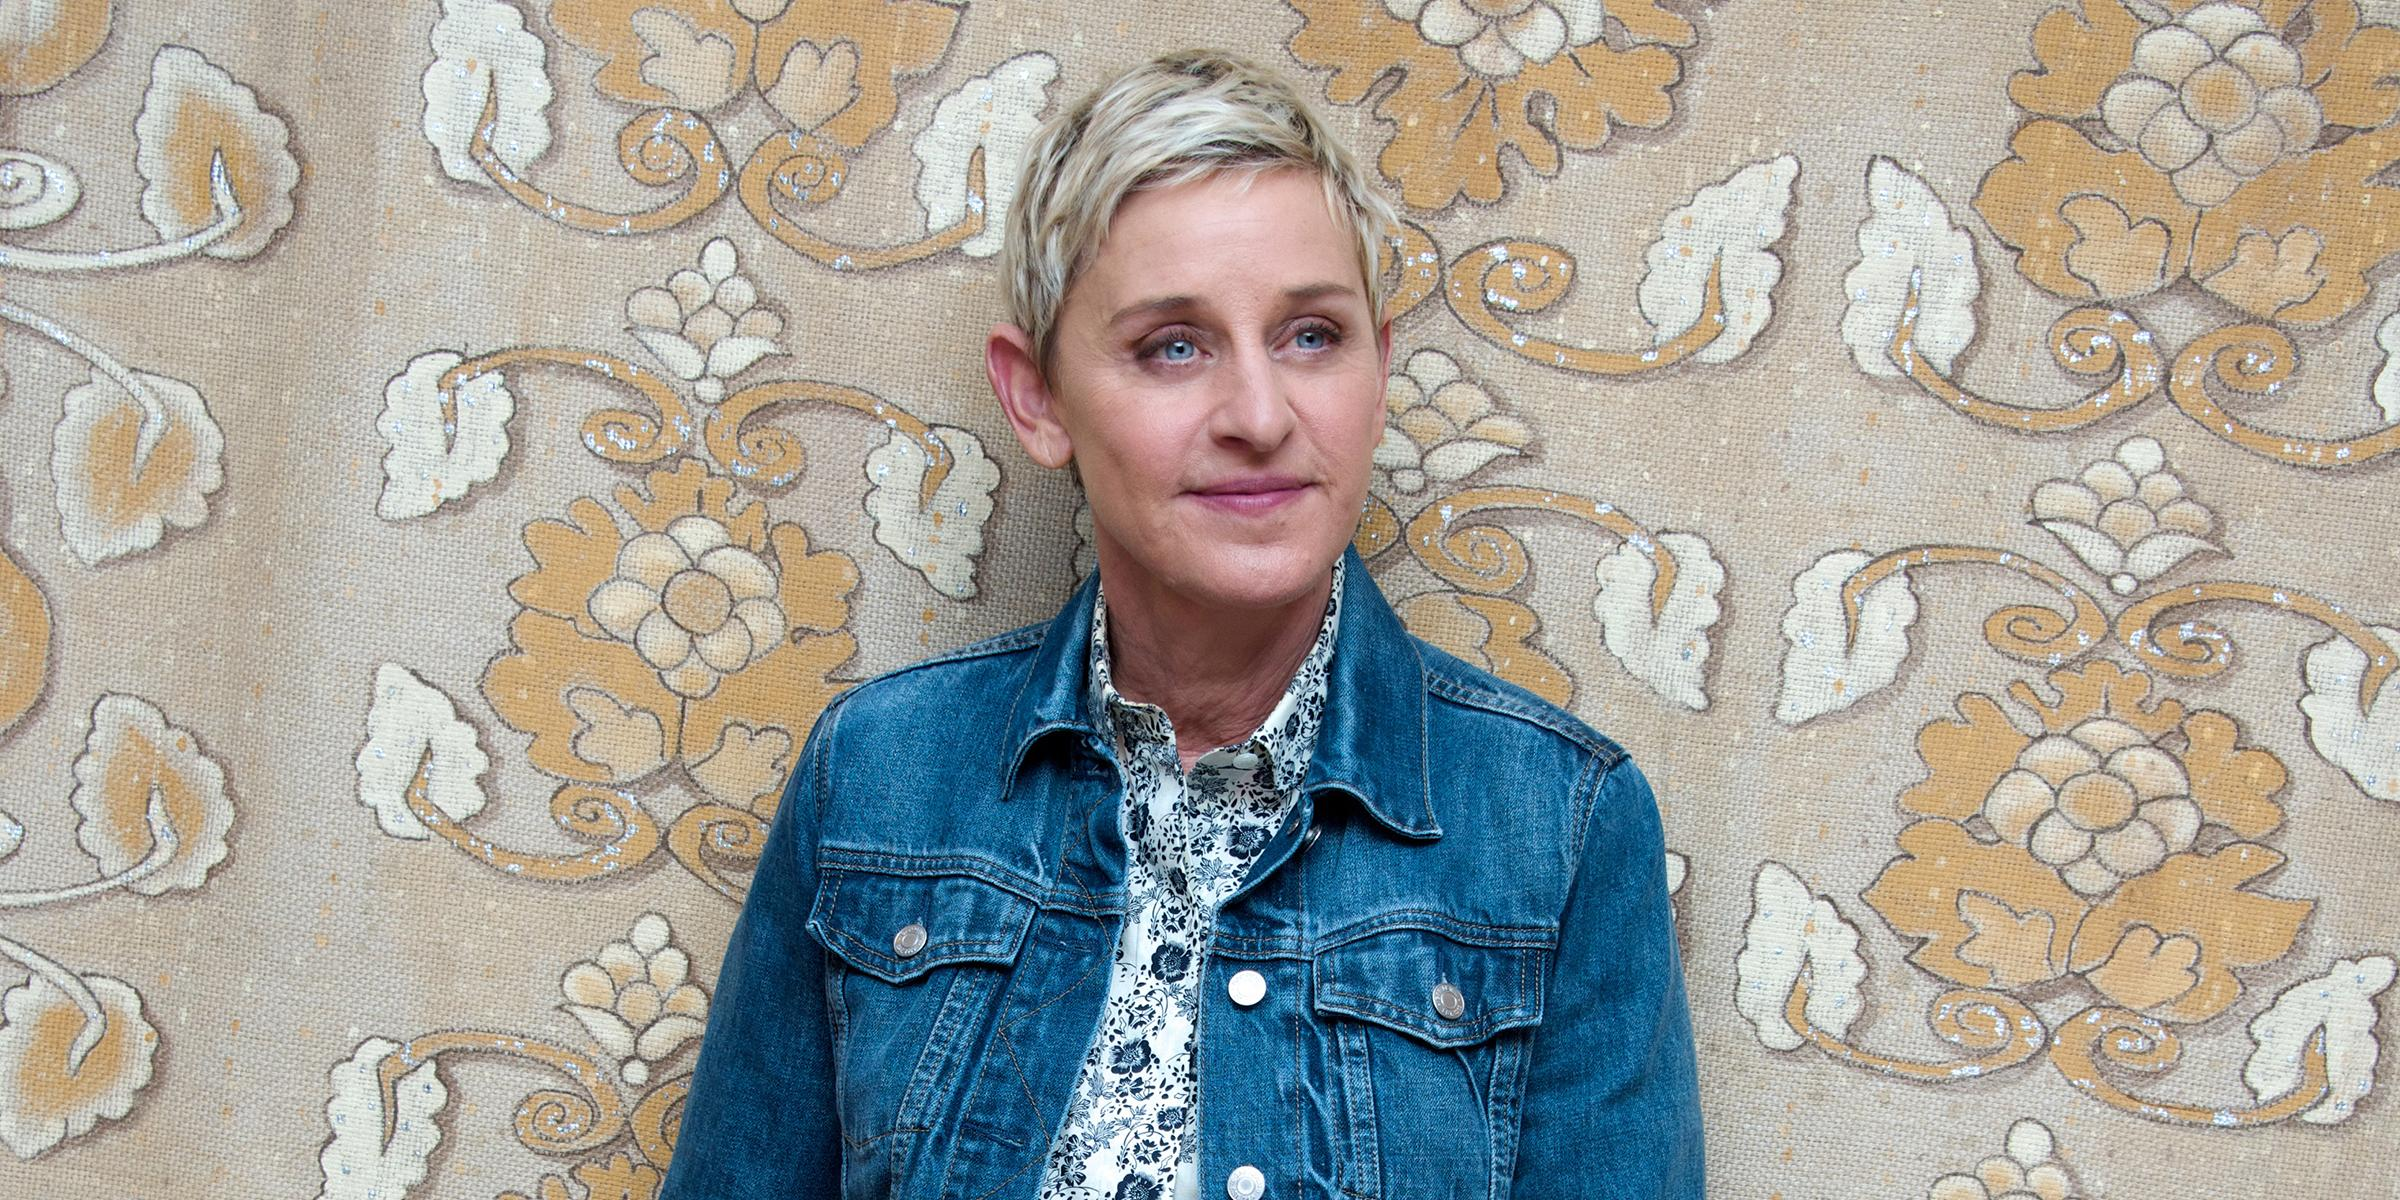 3 producers exit The Ellen DeGeneres Show amid workplace complaints